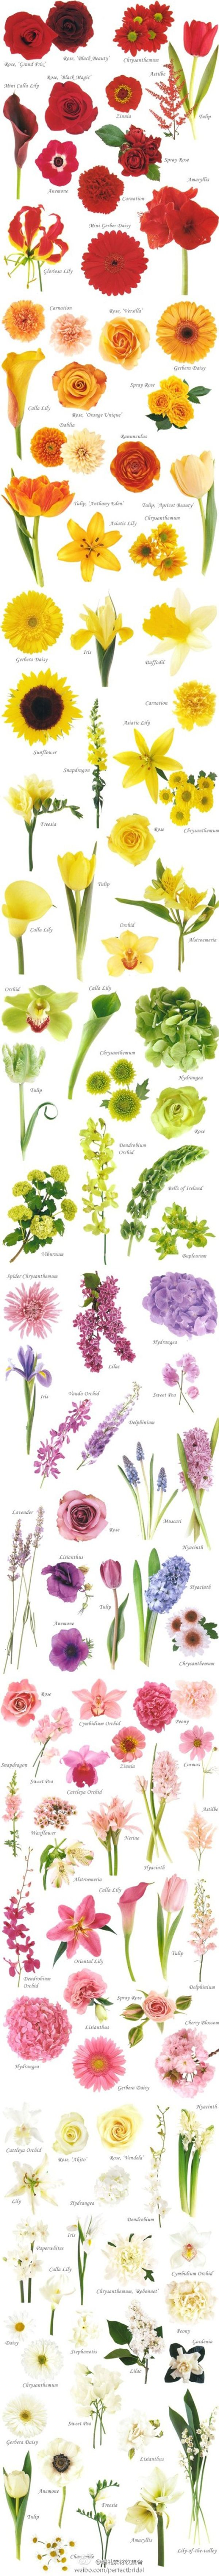 Flower chart by color